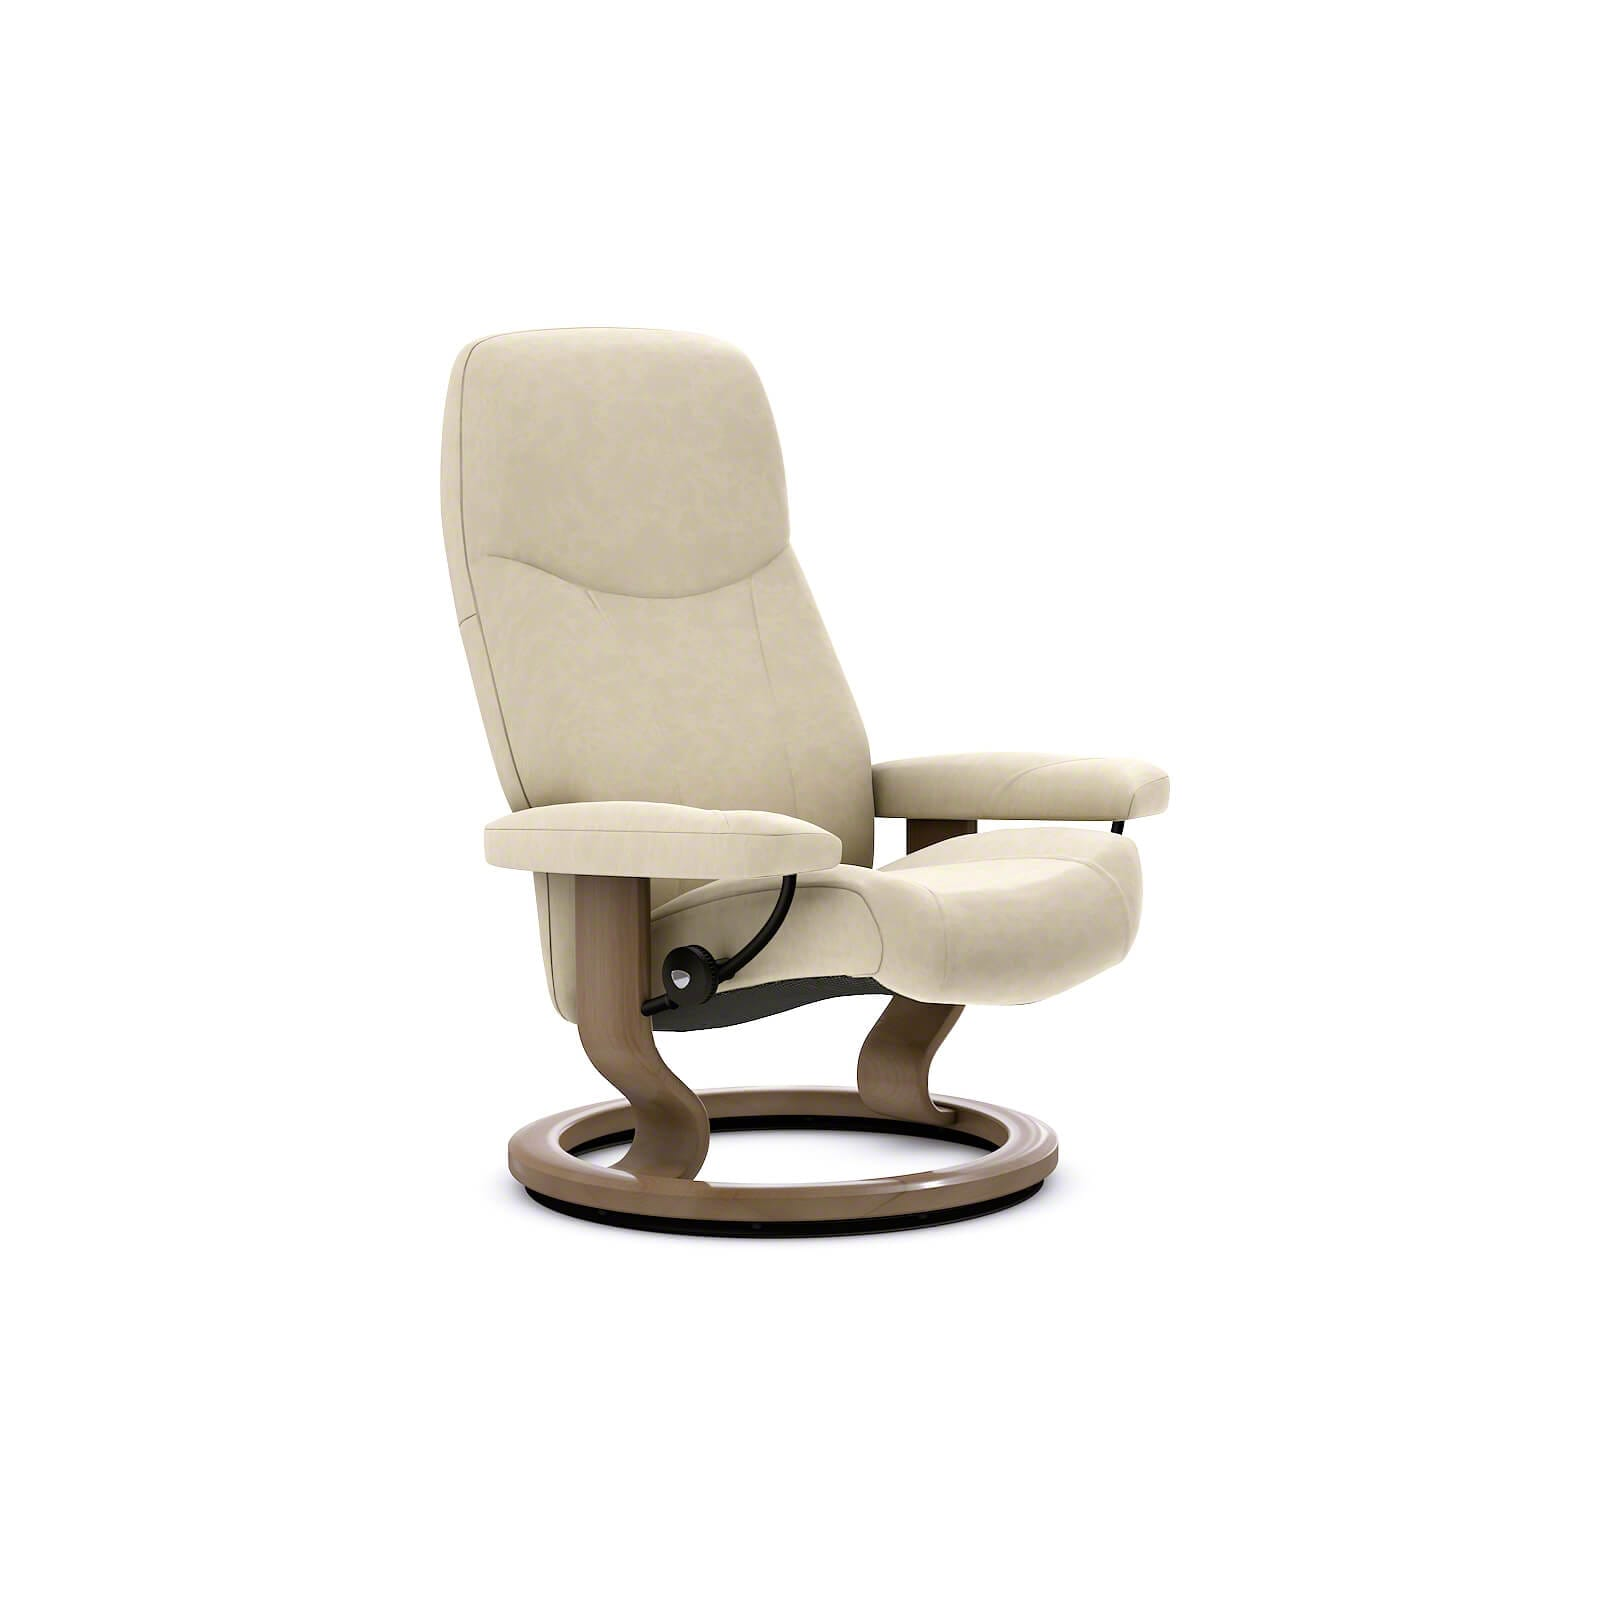 Stressless Cream Sofa Stressless Consul Sessel Batick Cream Ohne Hocker Stressless